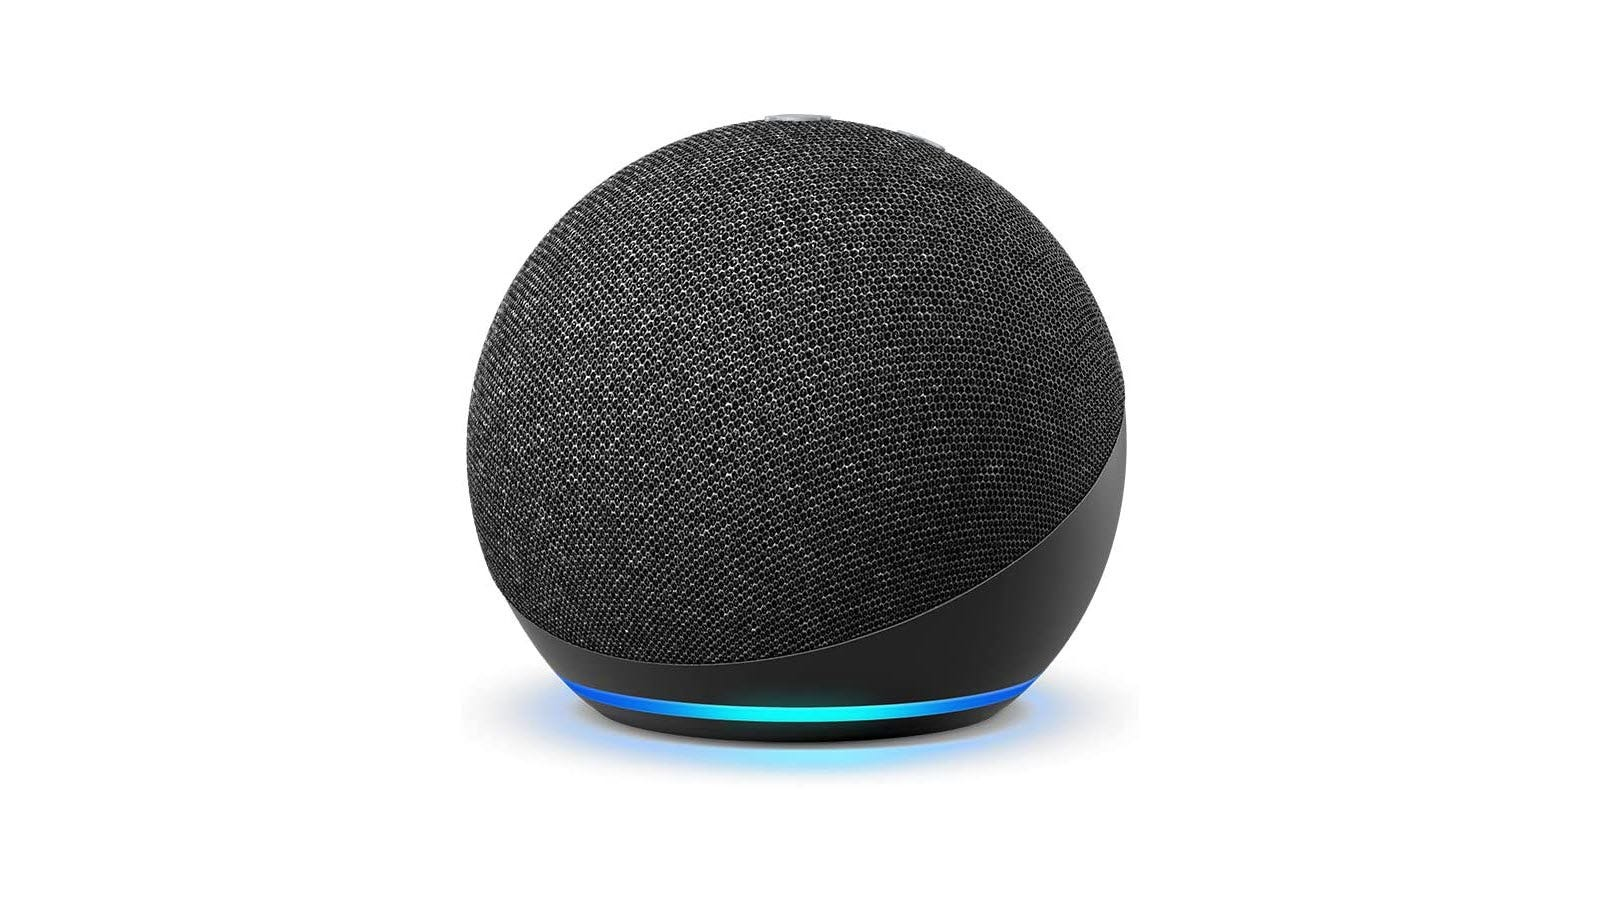 An Echo dot in sphere form.